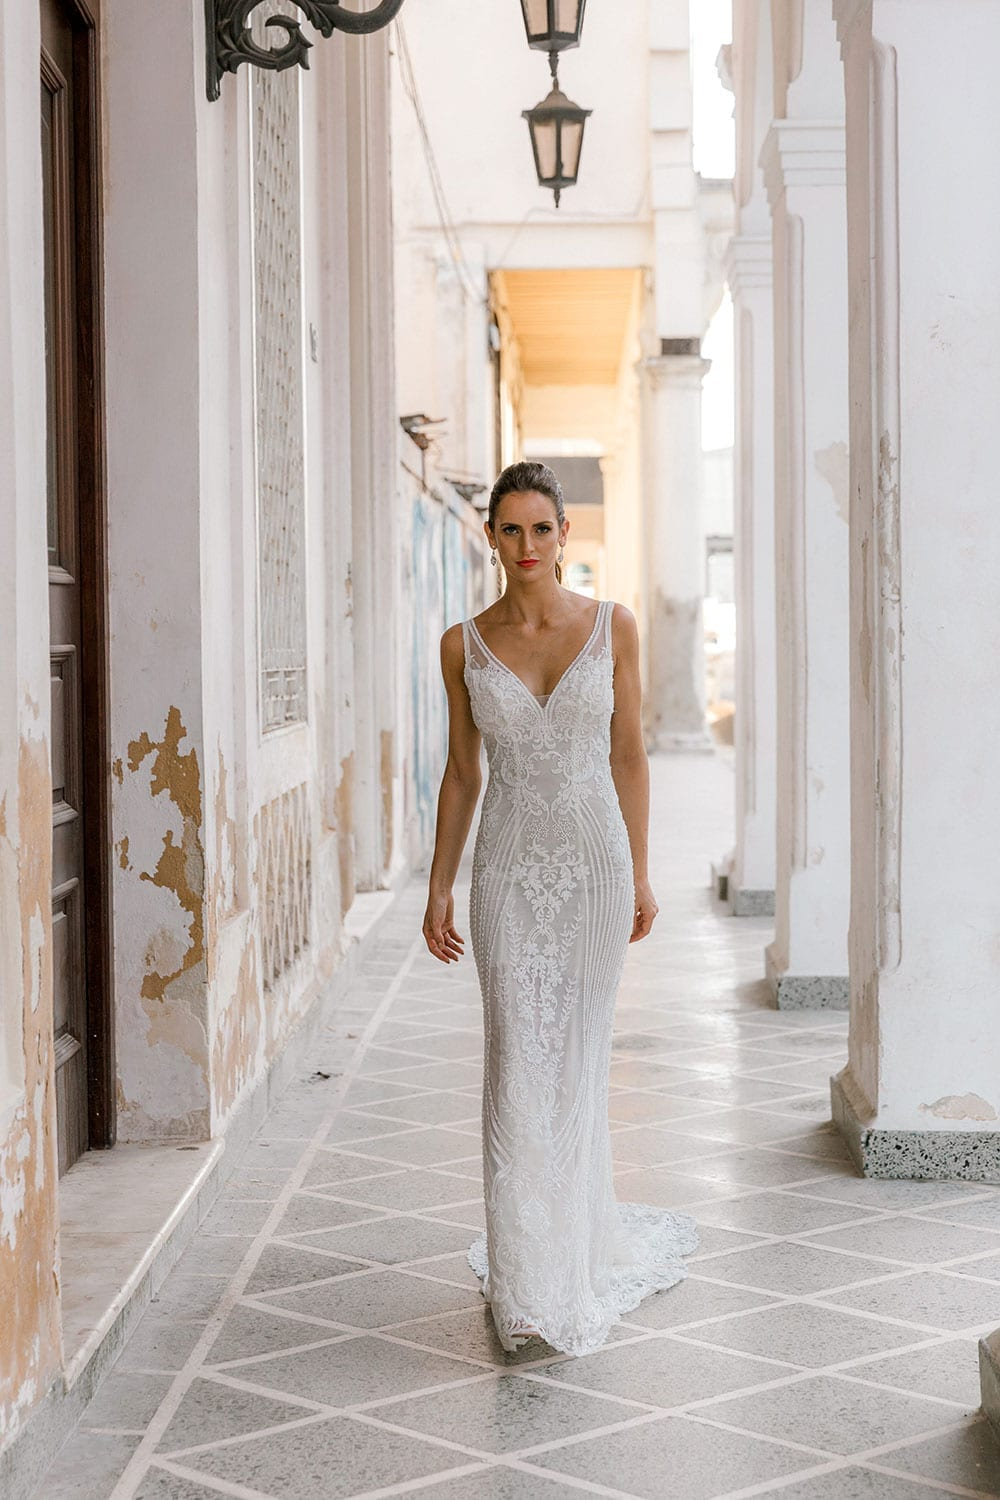 Model wearing Vinka Design Indi Wedding Dress, a Lace Fitted Wedding Gown walking through the streets of Havana